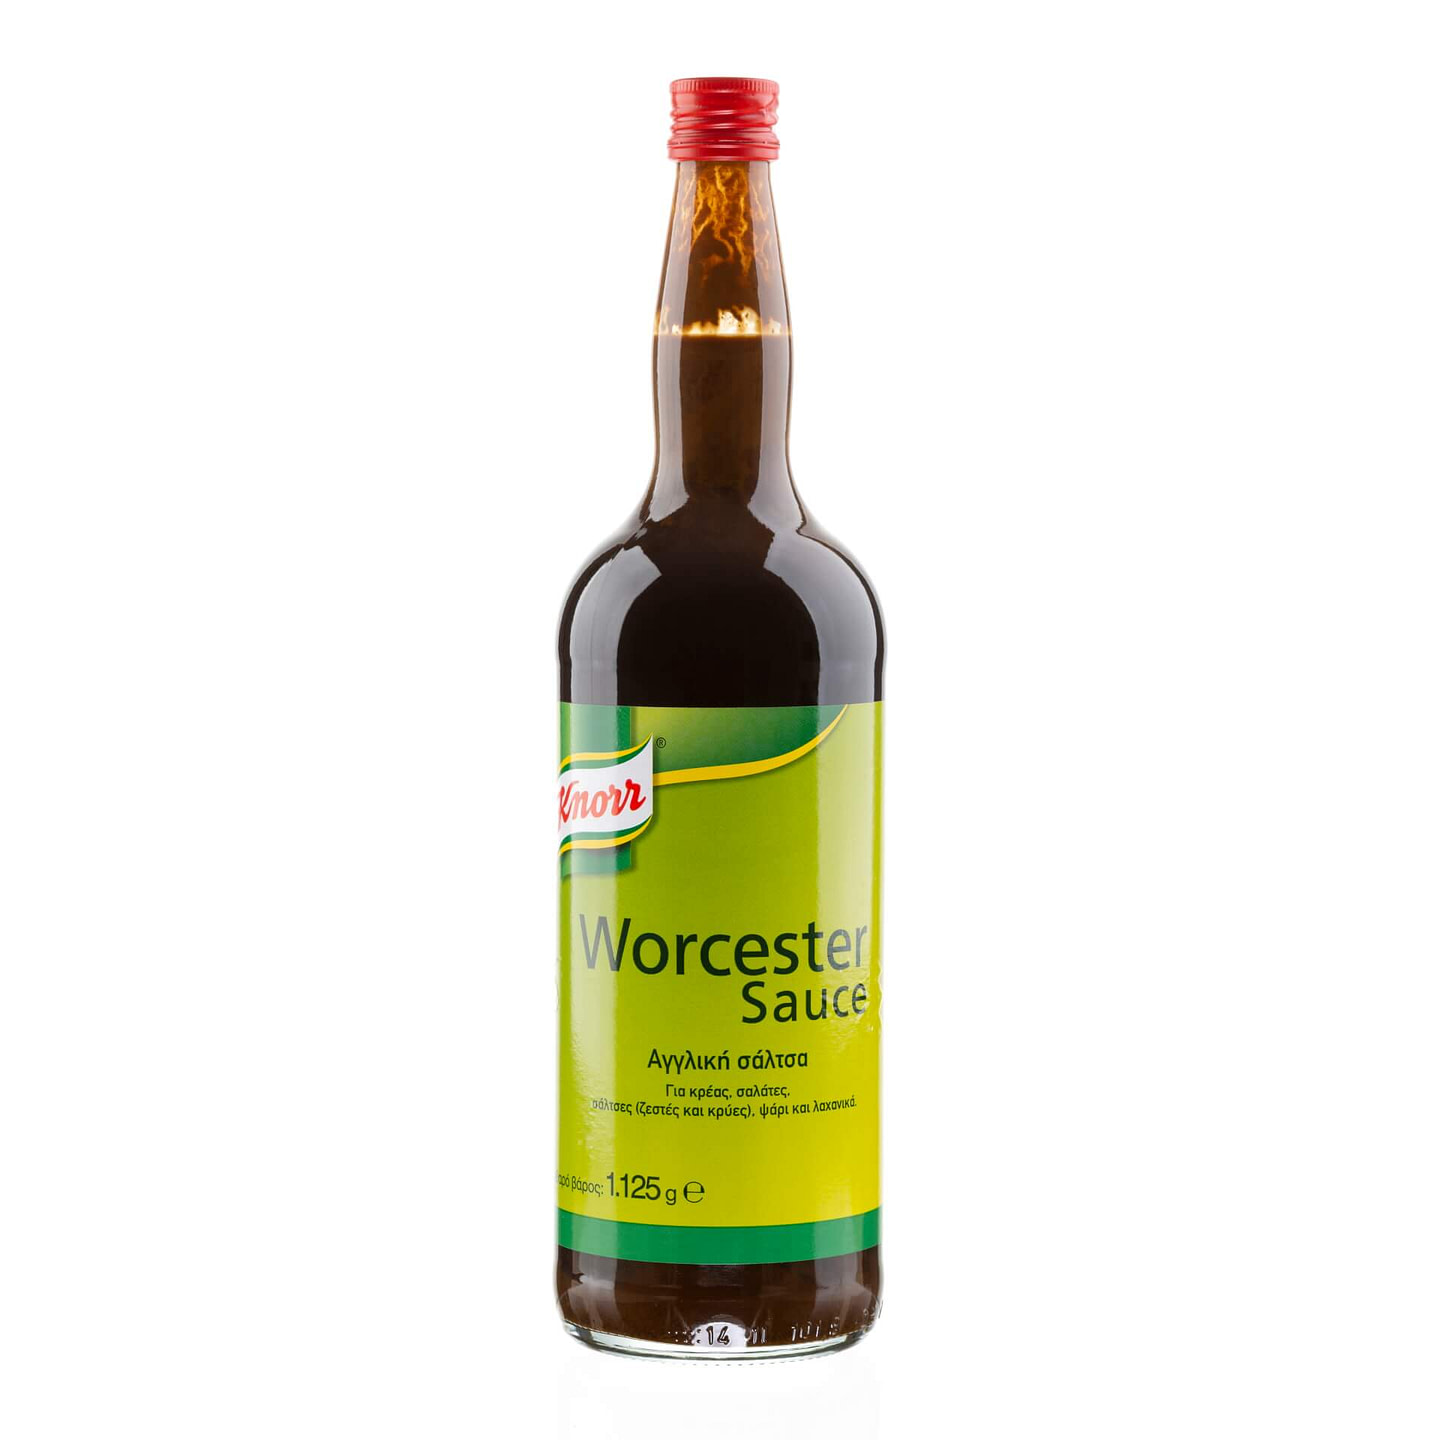 KNORR worcester sauce